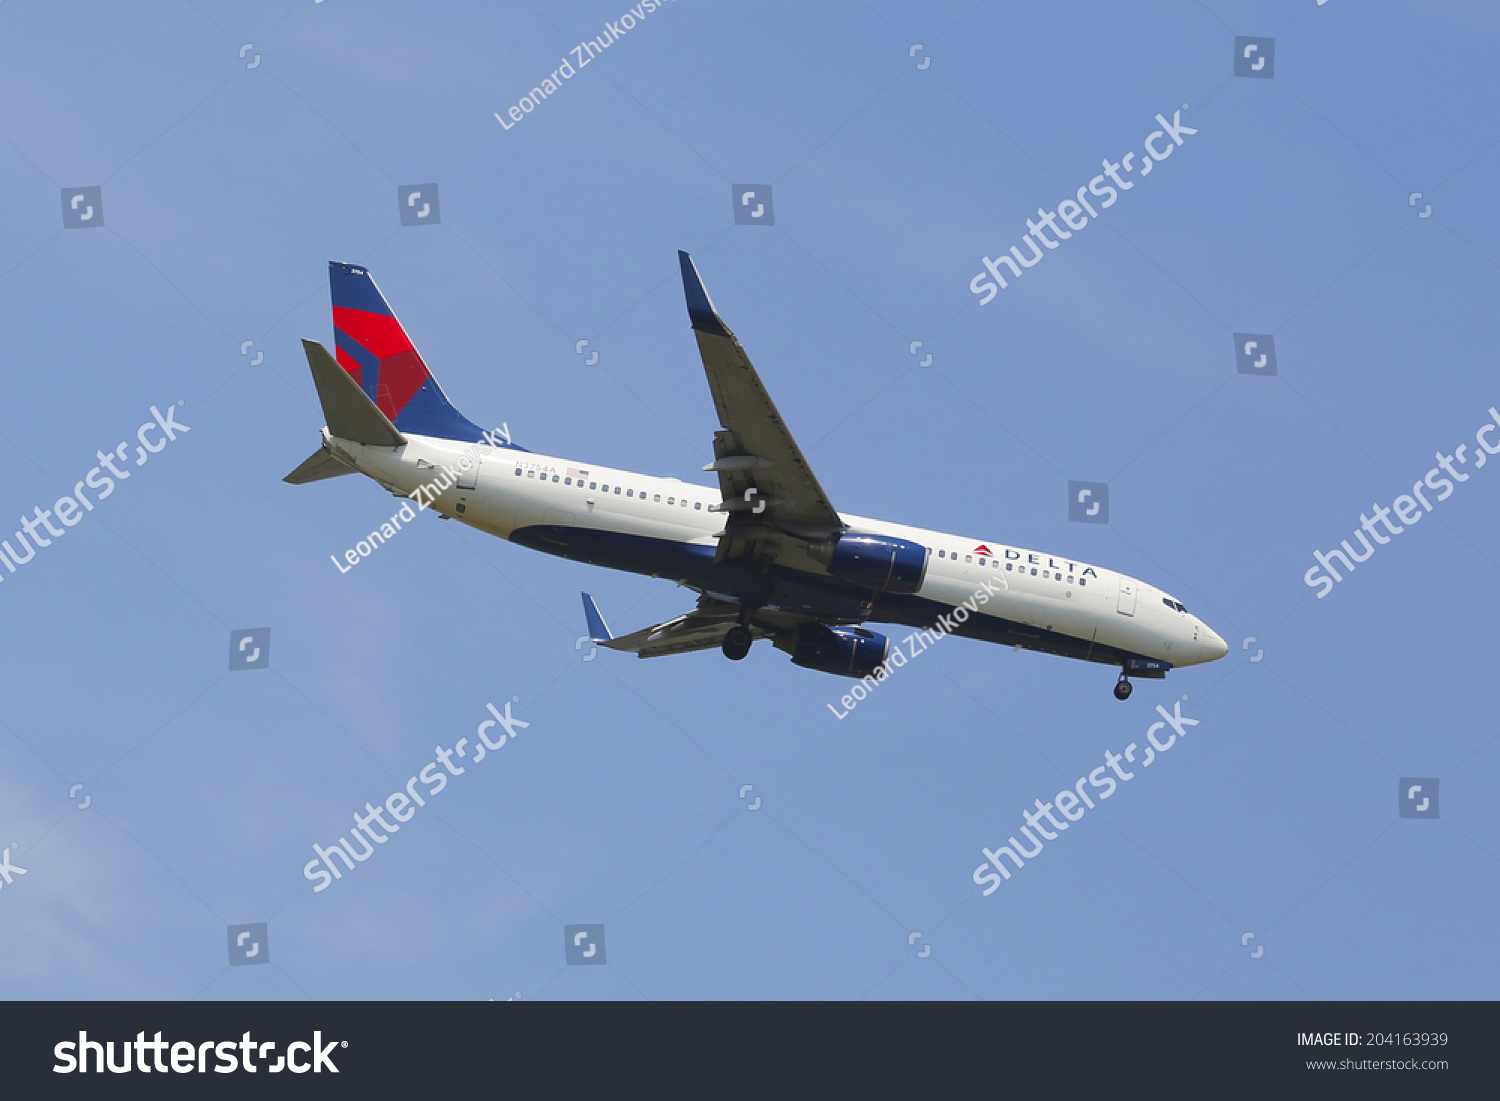 Delta airlines stock symbol gallery symbols and meanings new york july 8 delta airlines stock photo 204163939 shutterstock new york july 8 delta airlines buycottarizona Choice Image